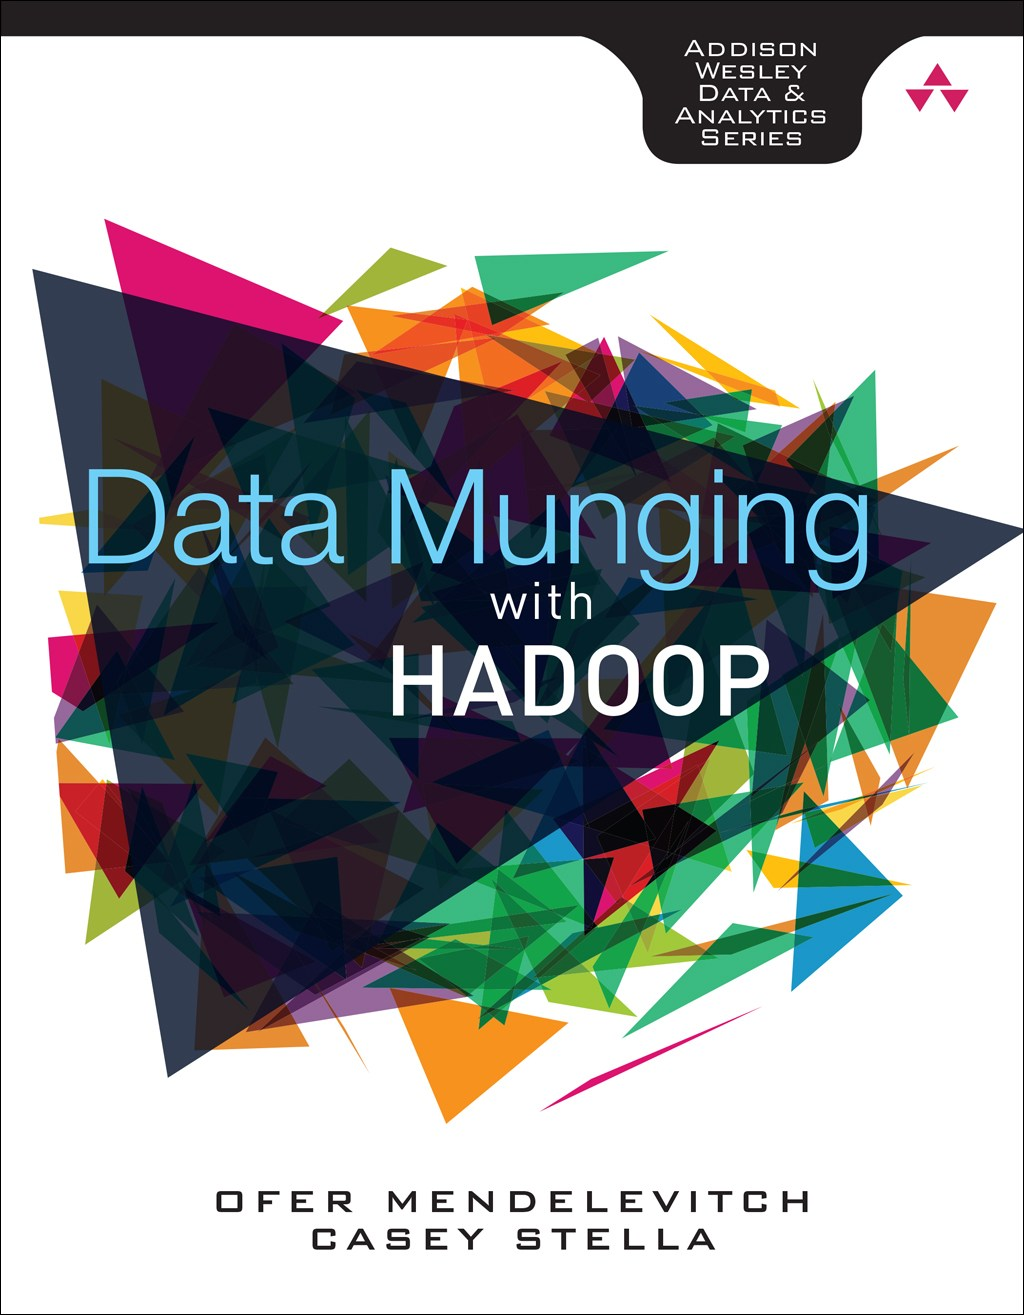 Data Munging with Hadoop